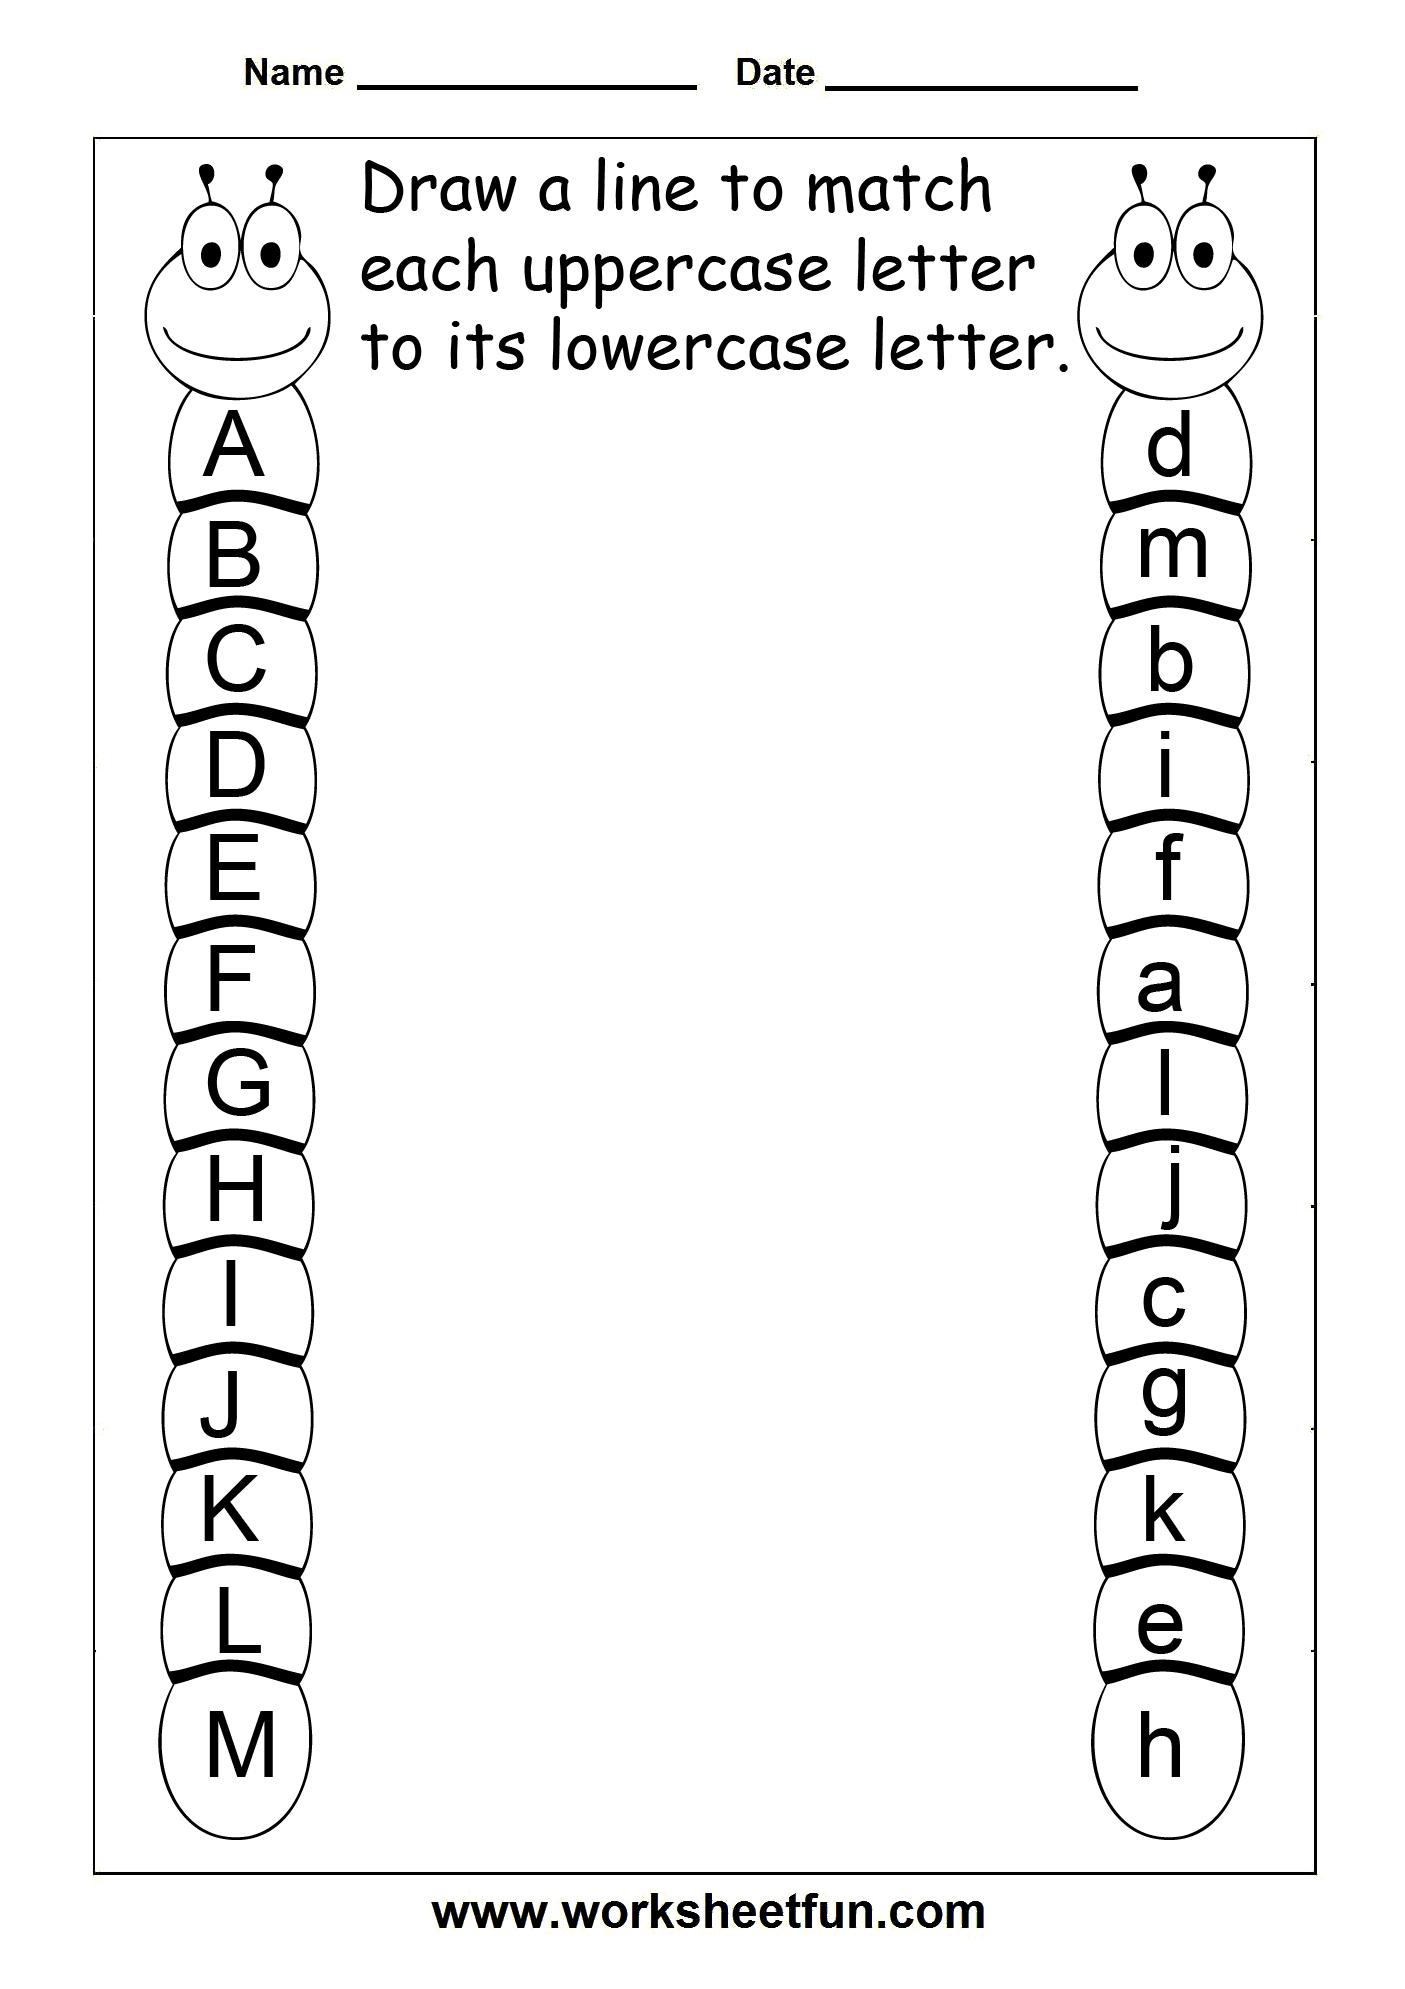 Weirdmailus  Seductive  Images About Work Worksheet On Pinterest  Hidden Pictures  With Magnificent  Images About Work Worksheet On Pinterest  Hidden Pictures Color By Numbers And Puzzles With Nice Matrix Inverse Worksheet Also Free First Grade Math Worksheets Printable In Addition Getting To Know You Questions For Kids Worksheet And Sequence Worksheets For Nd Grade As Well As Step Two Worksheet Additionally  Commandments Worksheets For Kids From Pinterestcom With Weirdmailus  Magnificent  Images About Work Worksheet On Pinterest  Hidden Pictures  With Nice  Images About Work Worksheet On Pinterest  Hidden Pictures Color By Numbers And Puzzles And Seductive Matrix Inverse Worksheet Also Free First Grade Math Worksheets Printable In Addition Getting To Know You Questions For Kids Worksheet From Pinterestcom